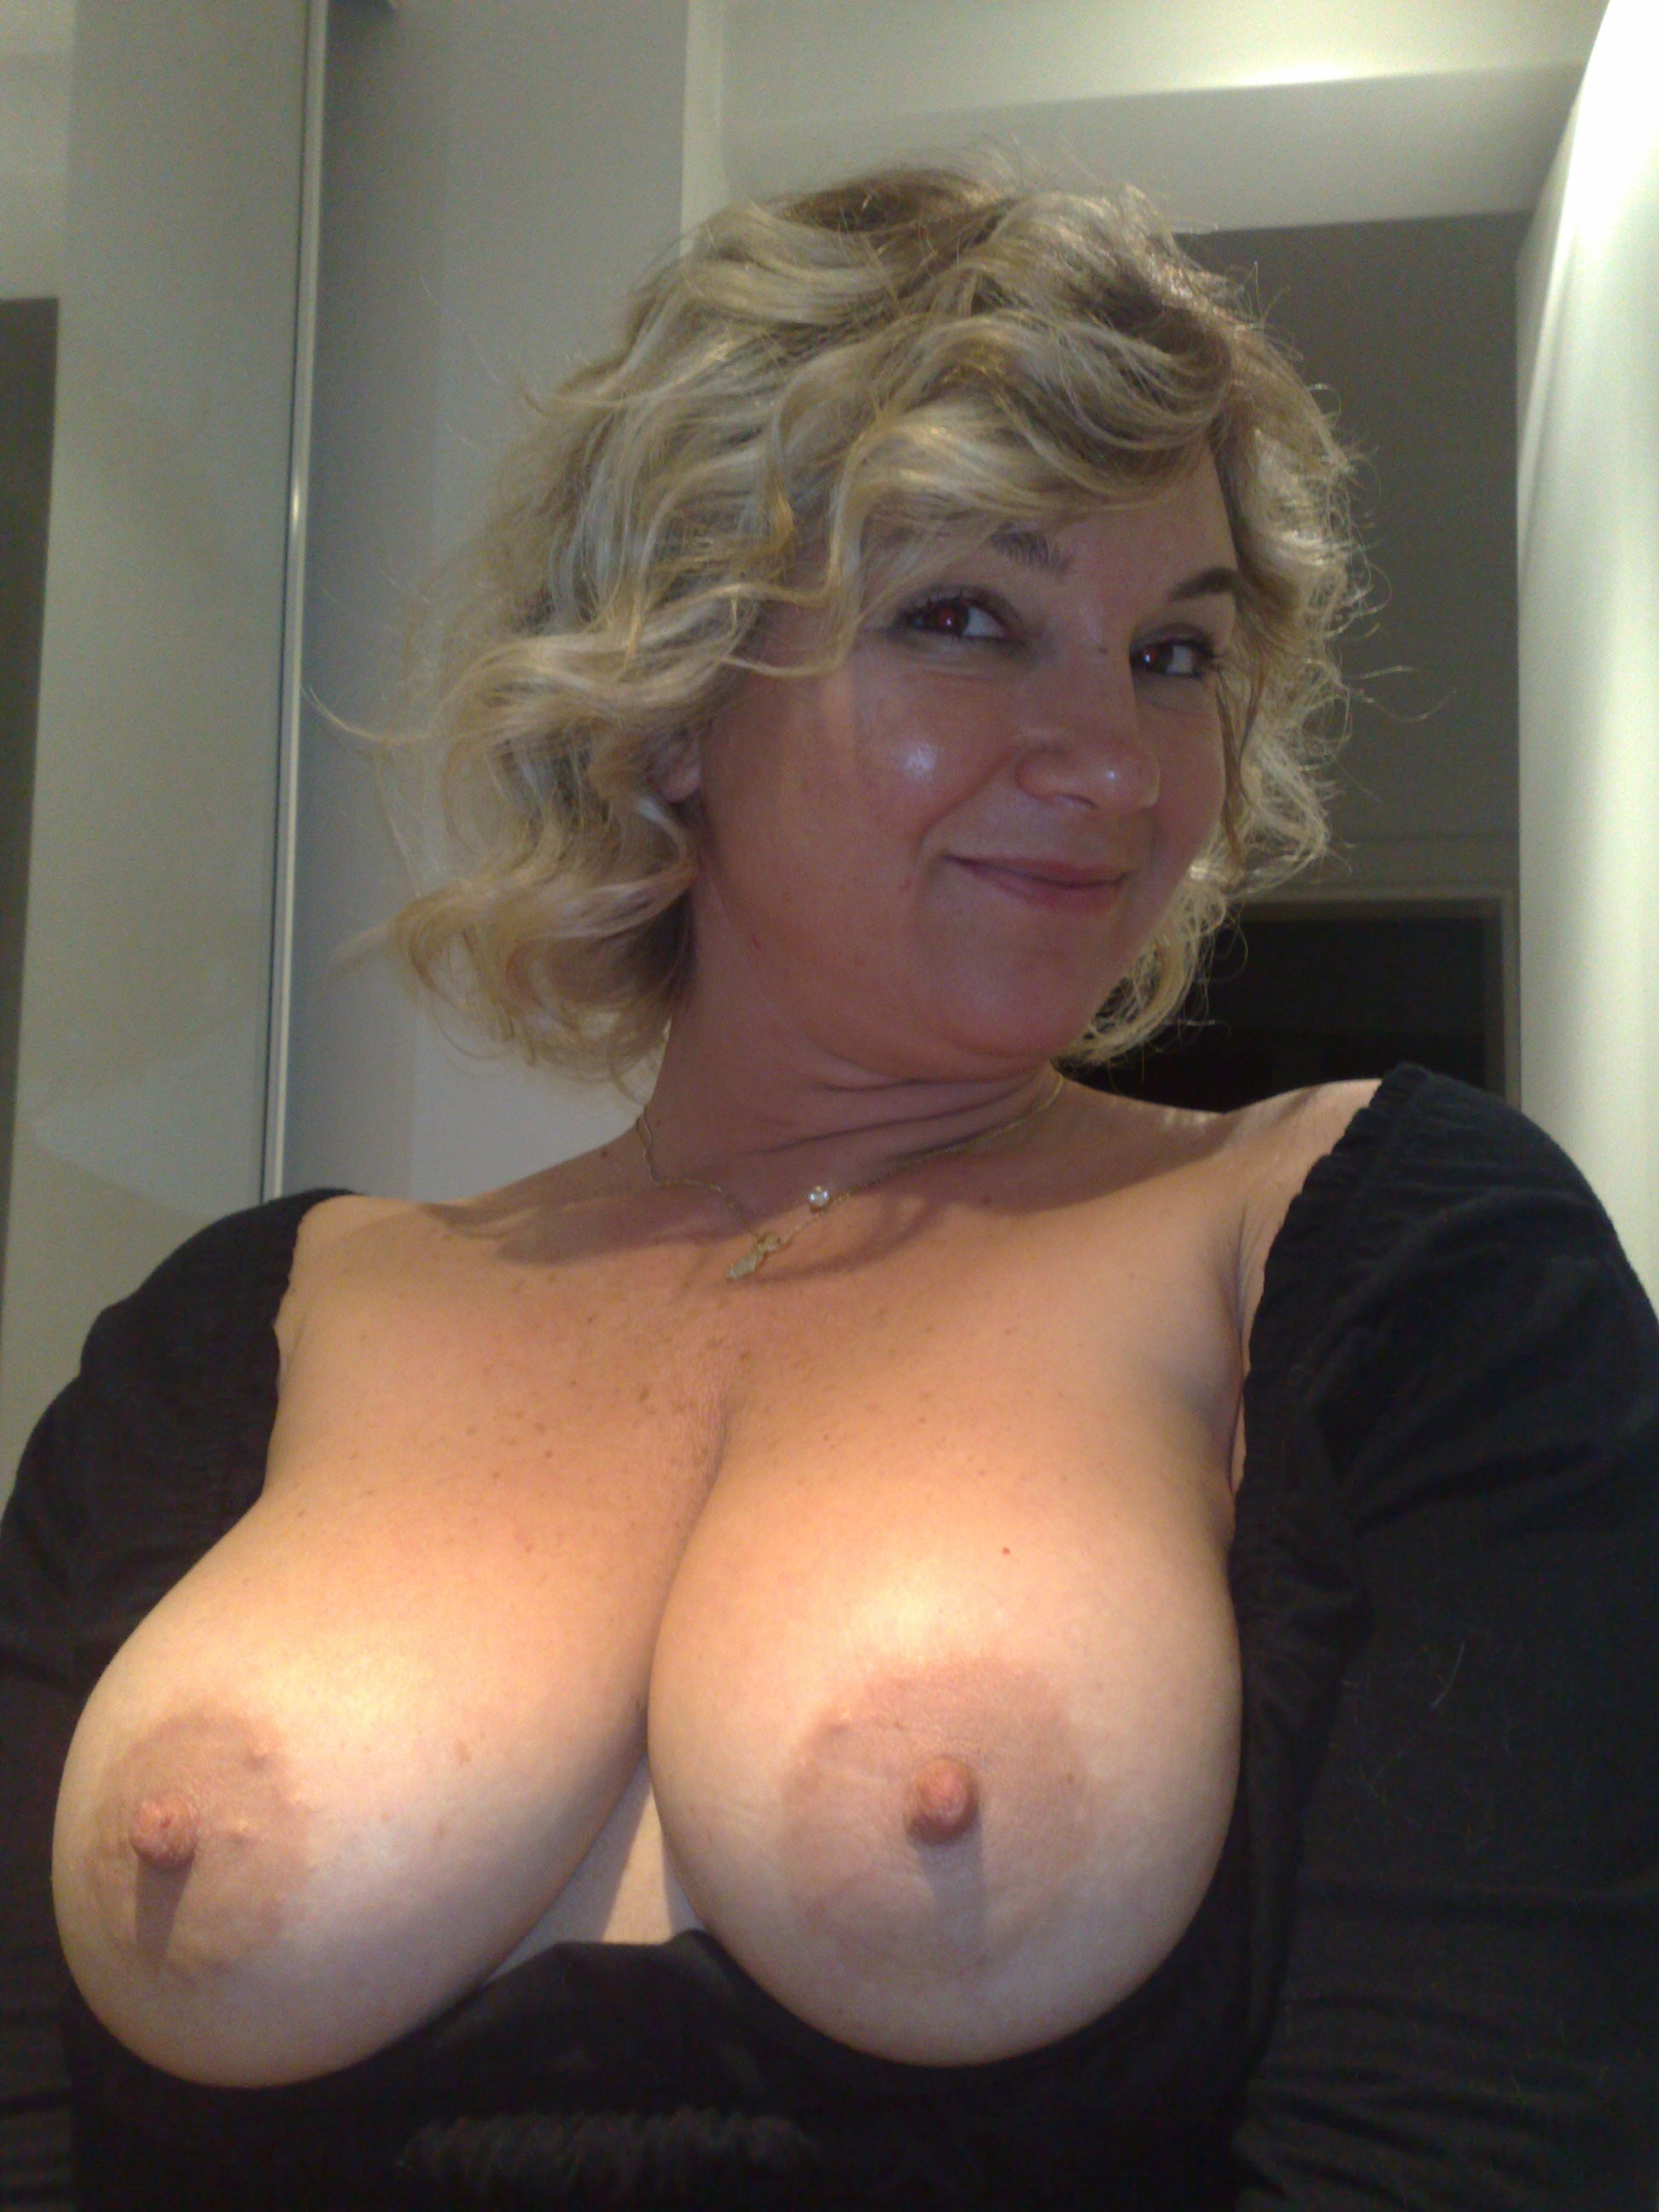 Too Self shot naked mature women think, that